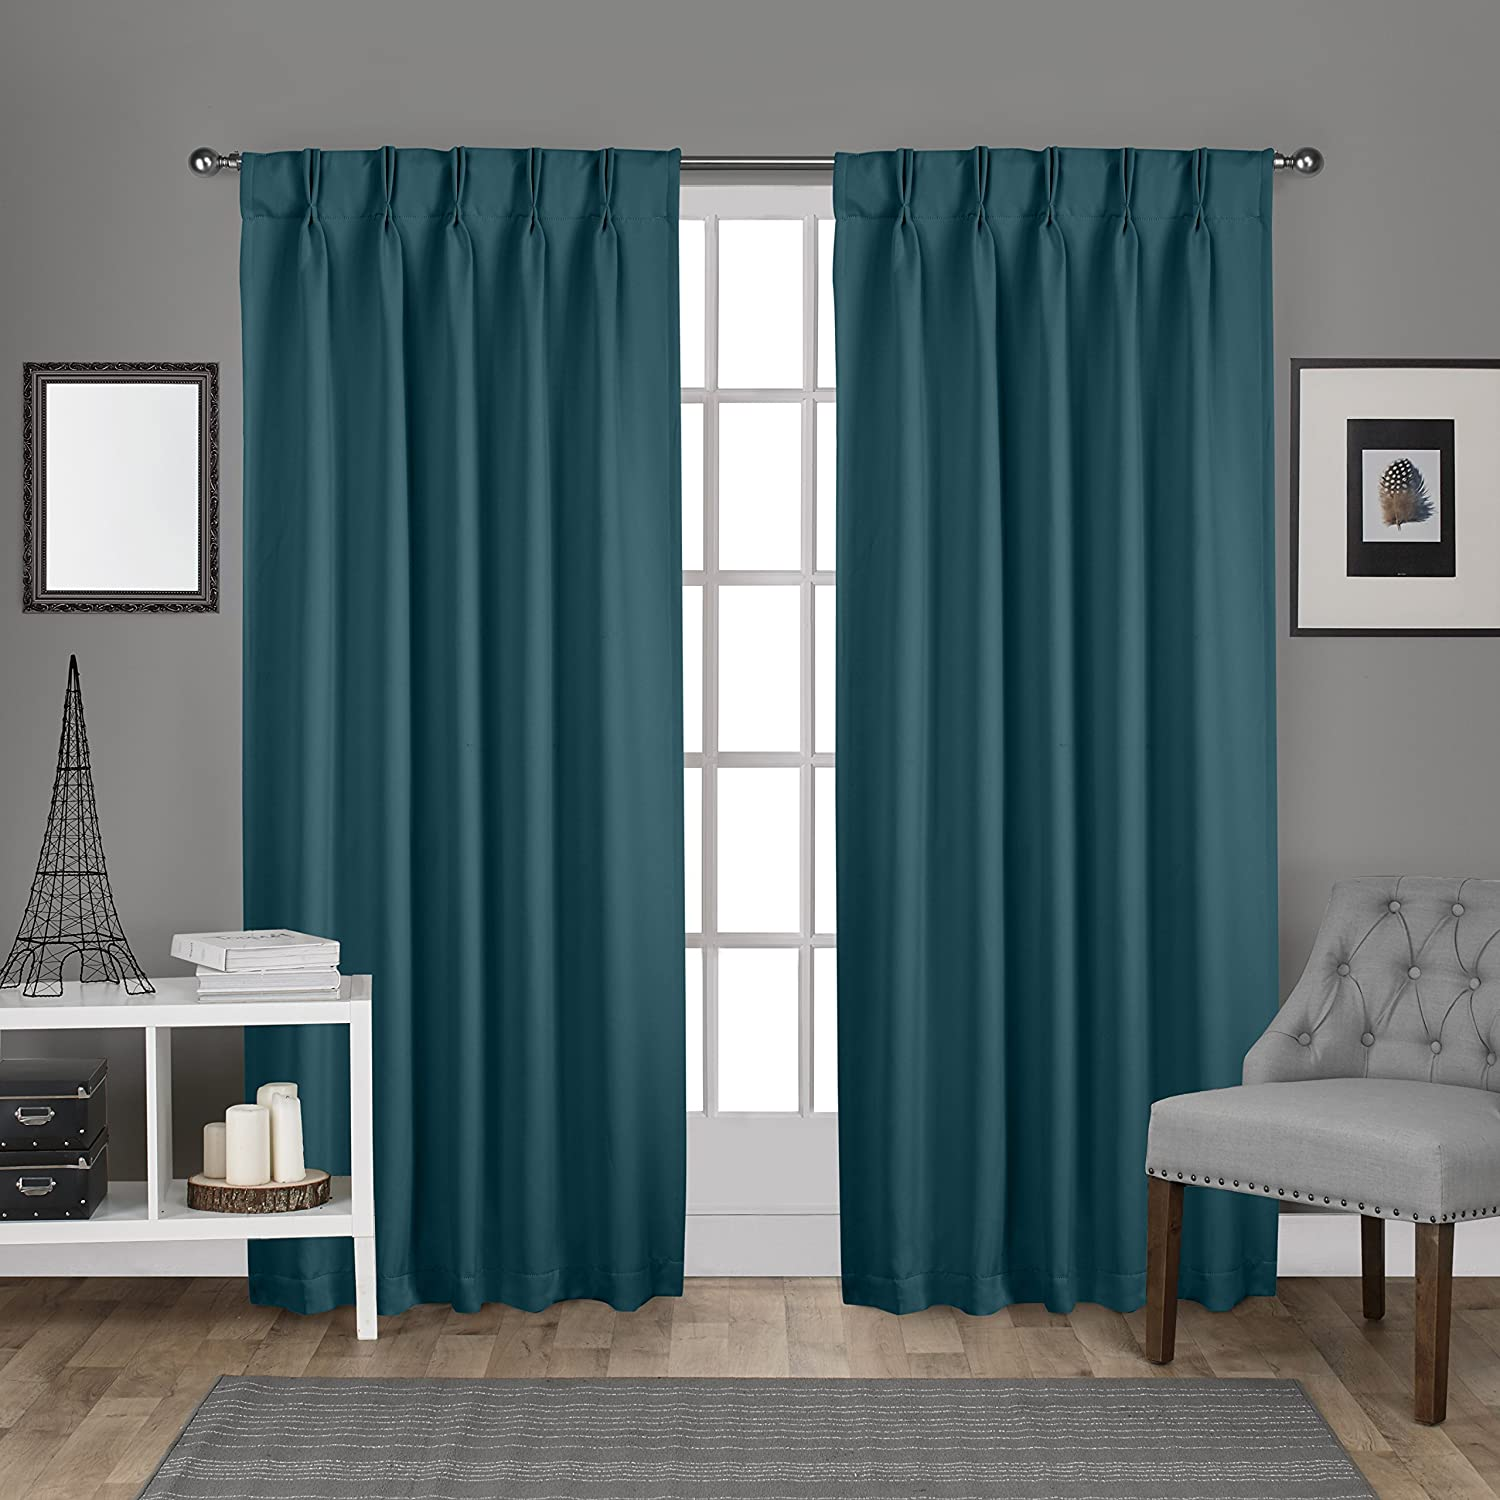 Exclusive Home Curtains Sateen Pinch Pleat Woven Blackout Back Tab Window Curtain Panel Pair, Teal